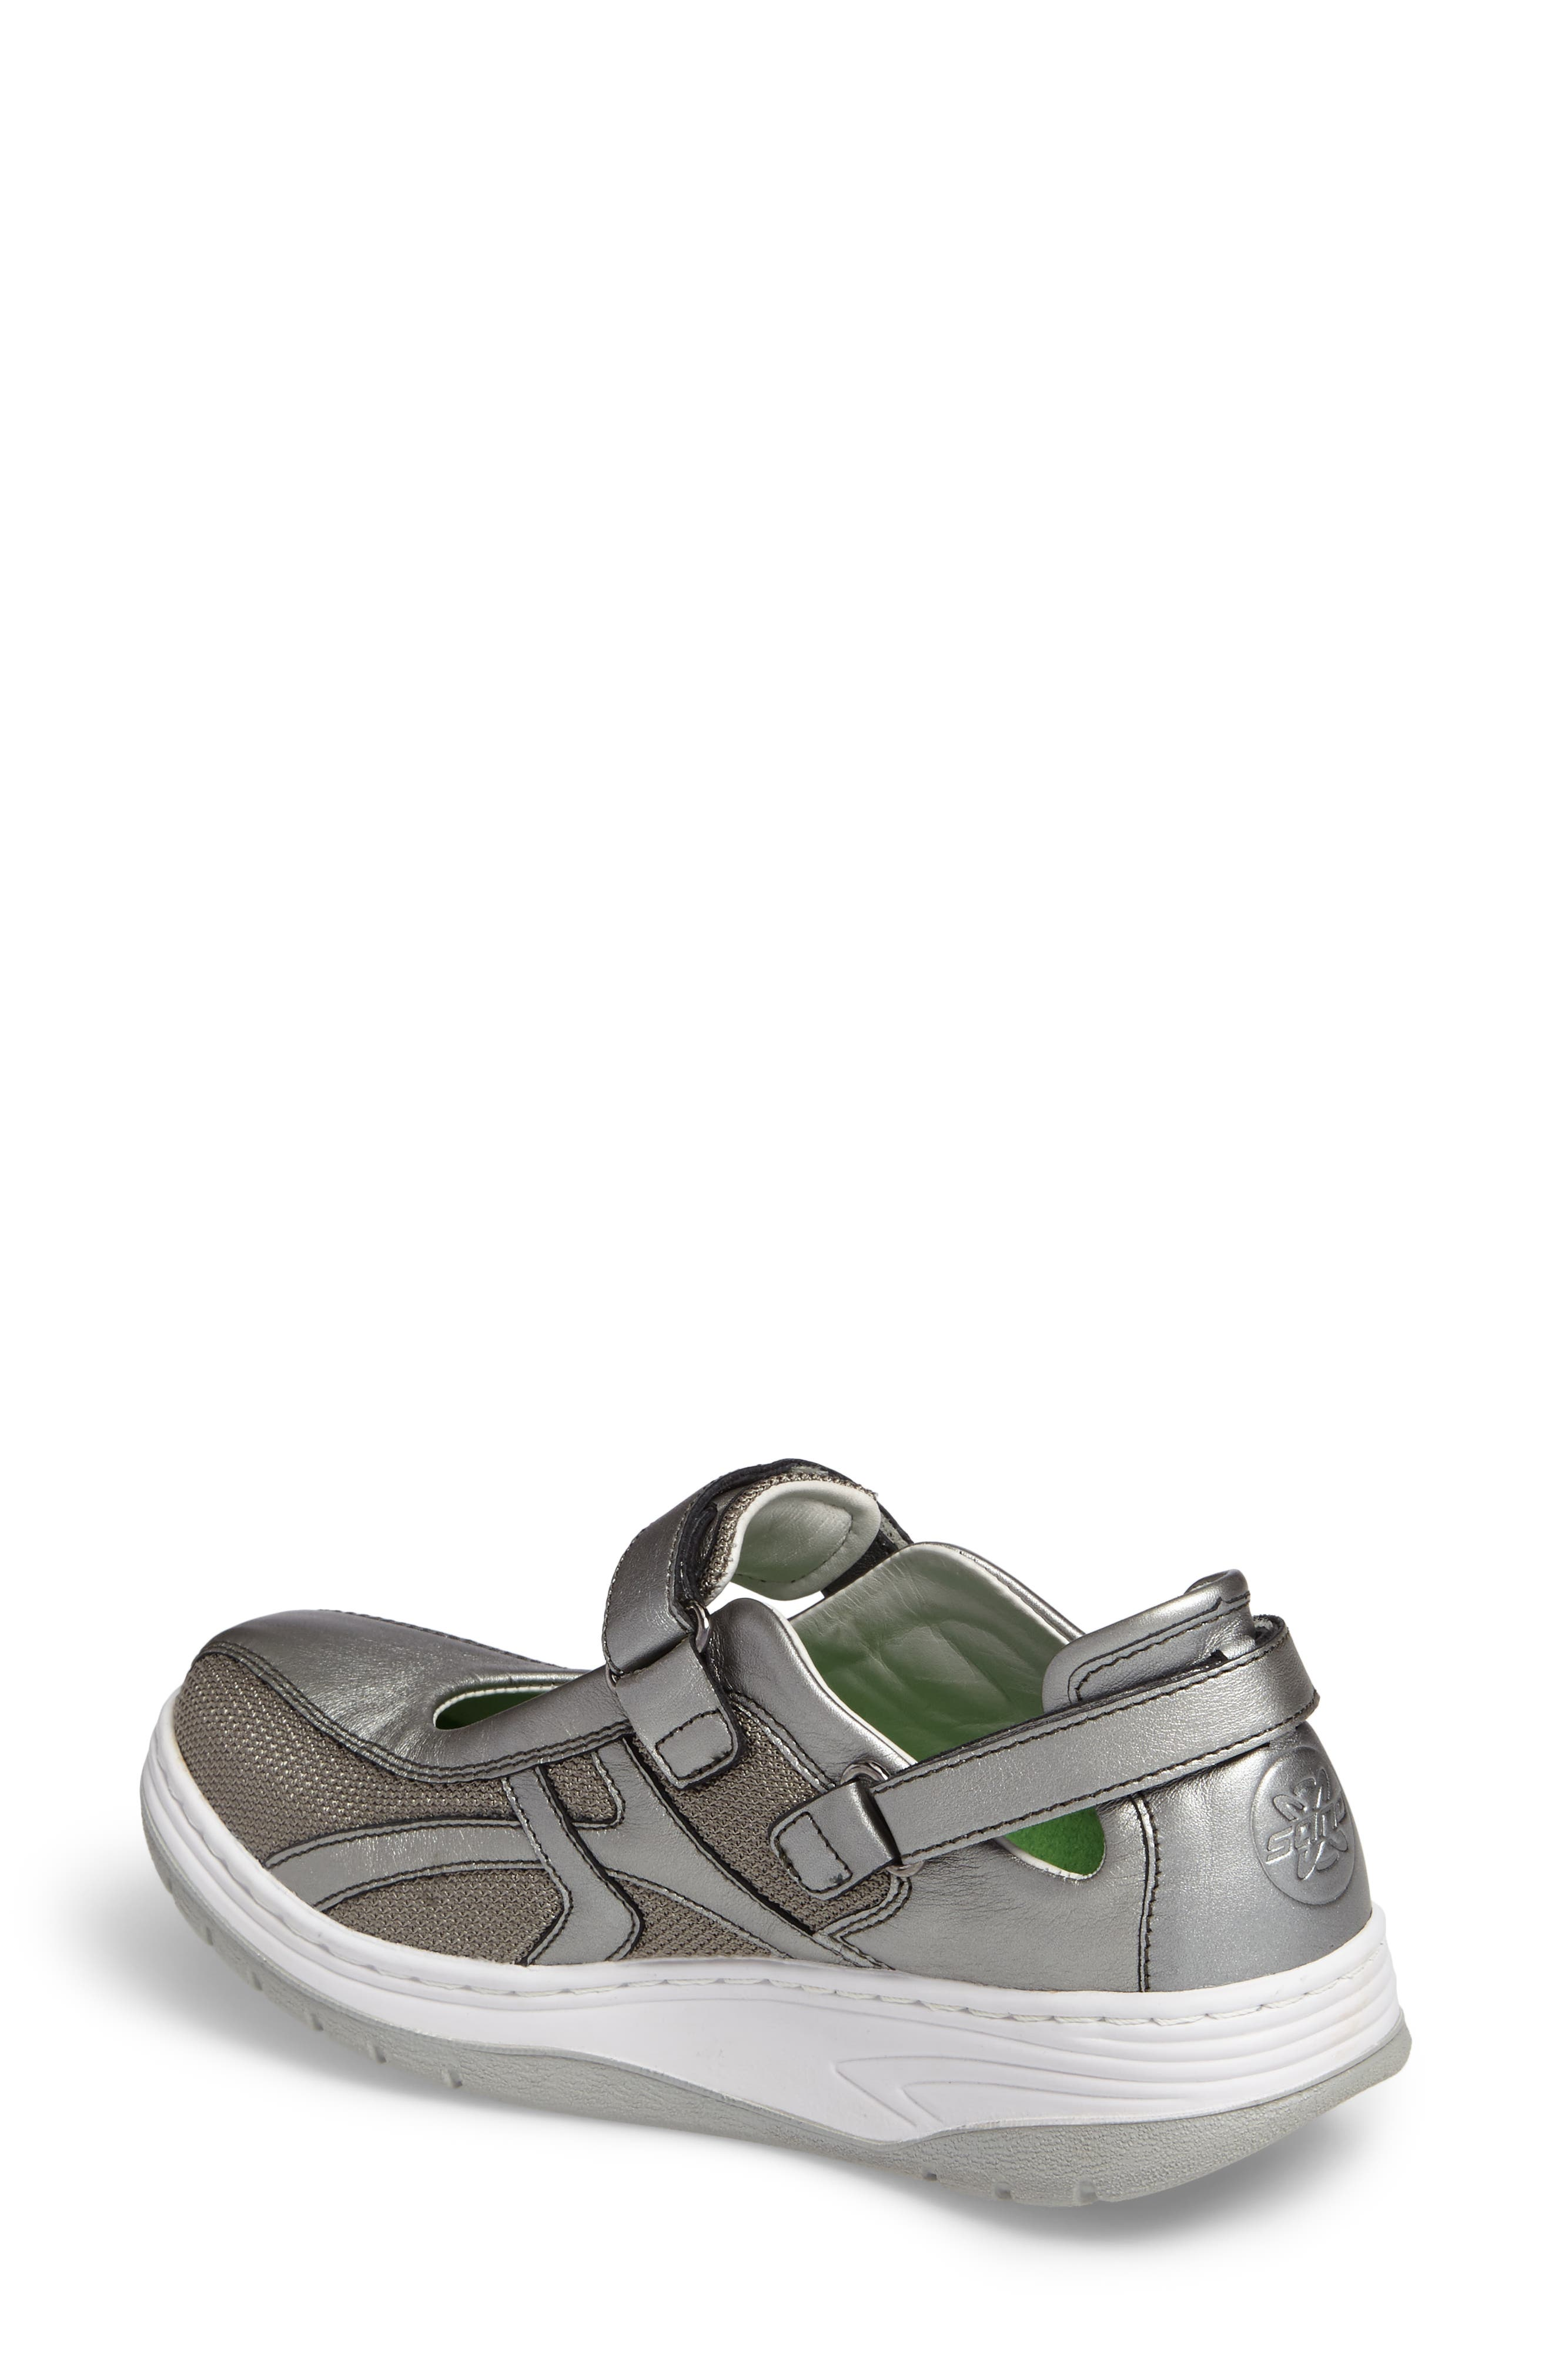 Sano by Mephisto 'Excess' Walking Shoe,                             Alternate thumbnail 7, color,